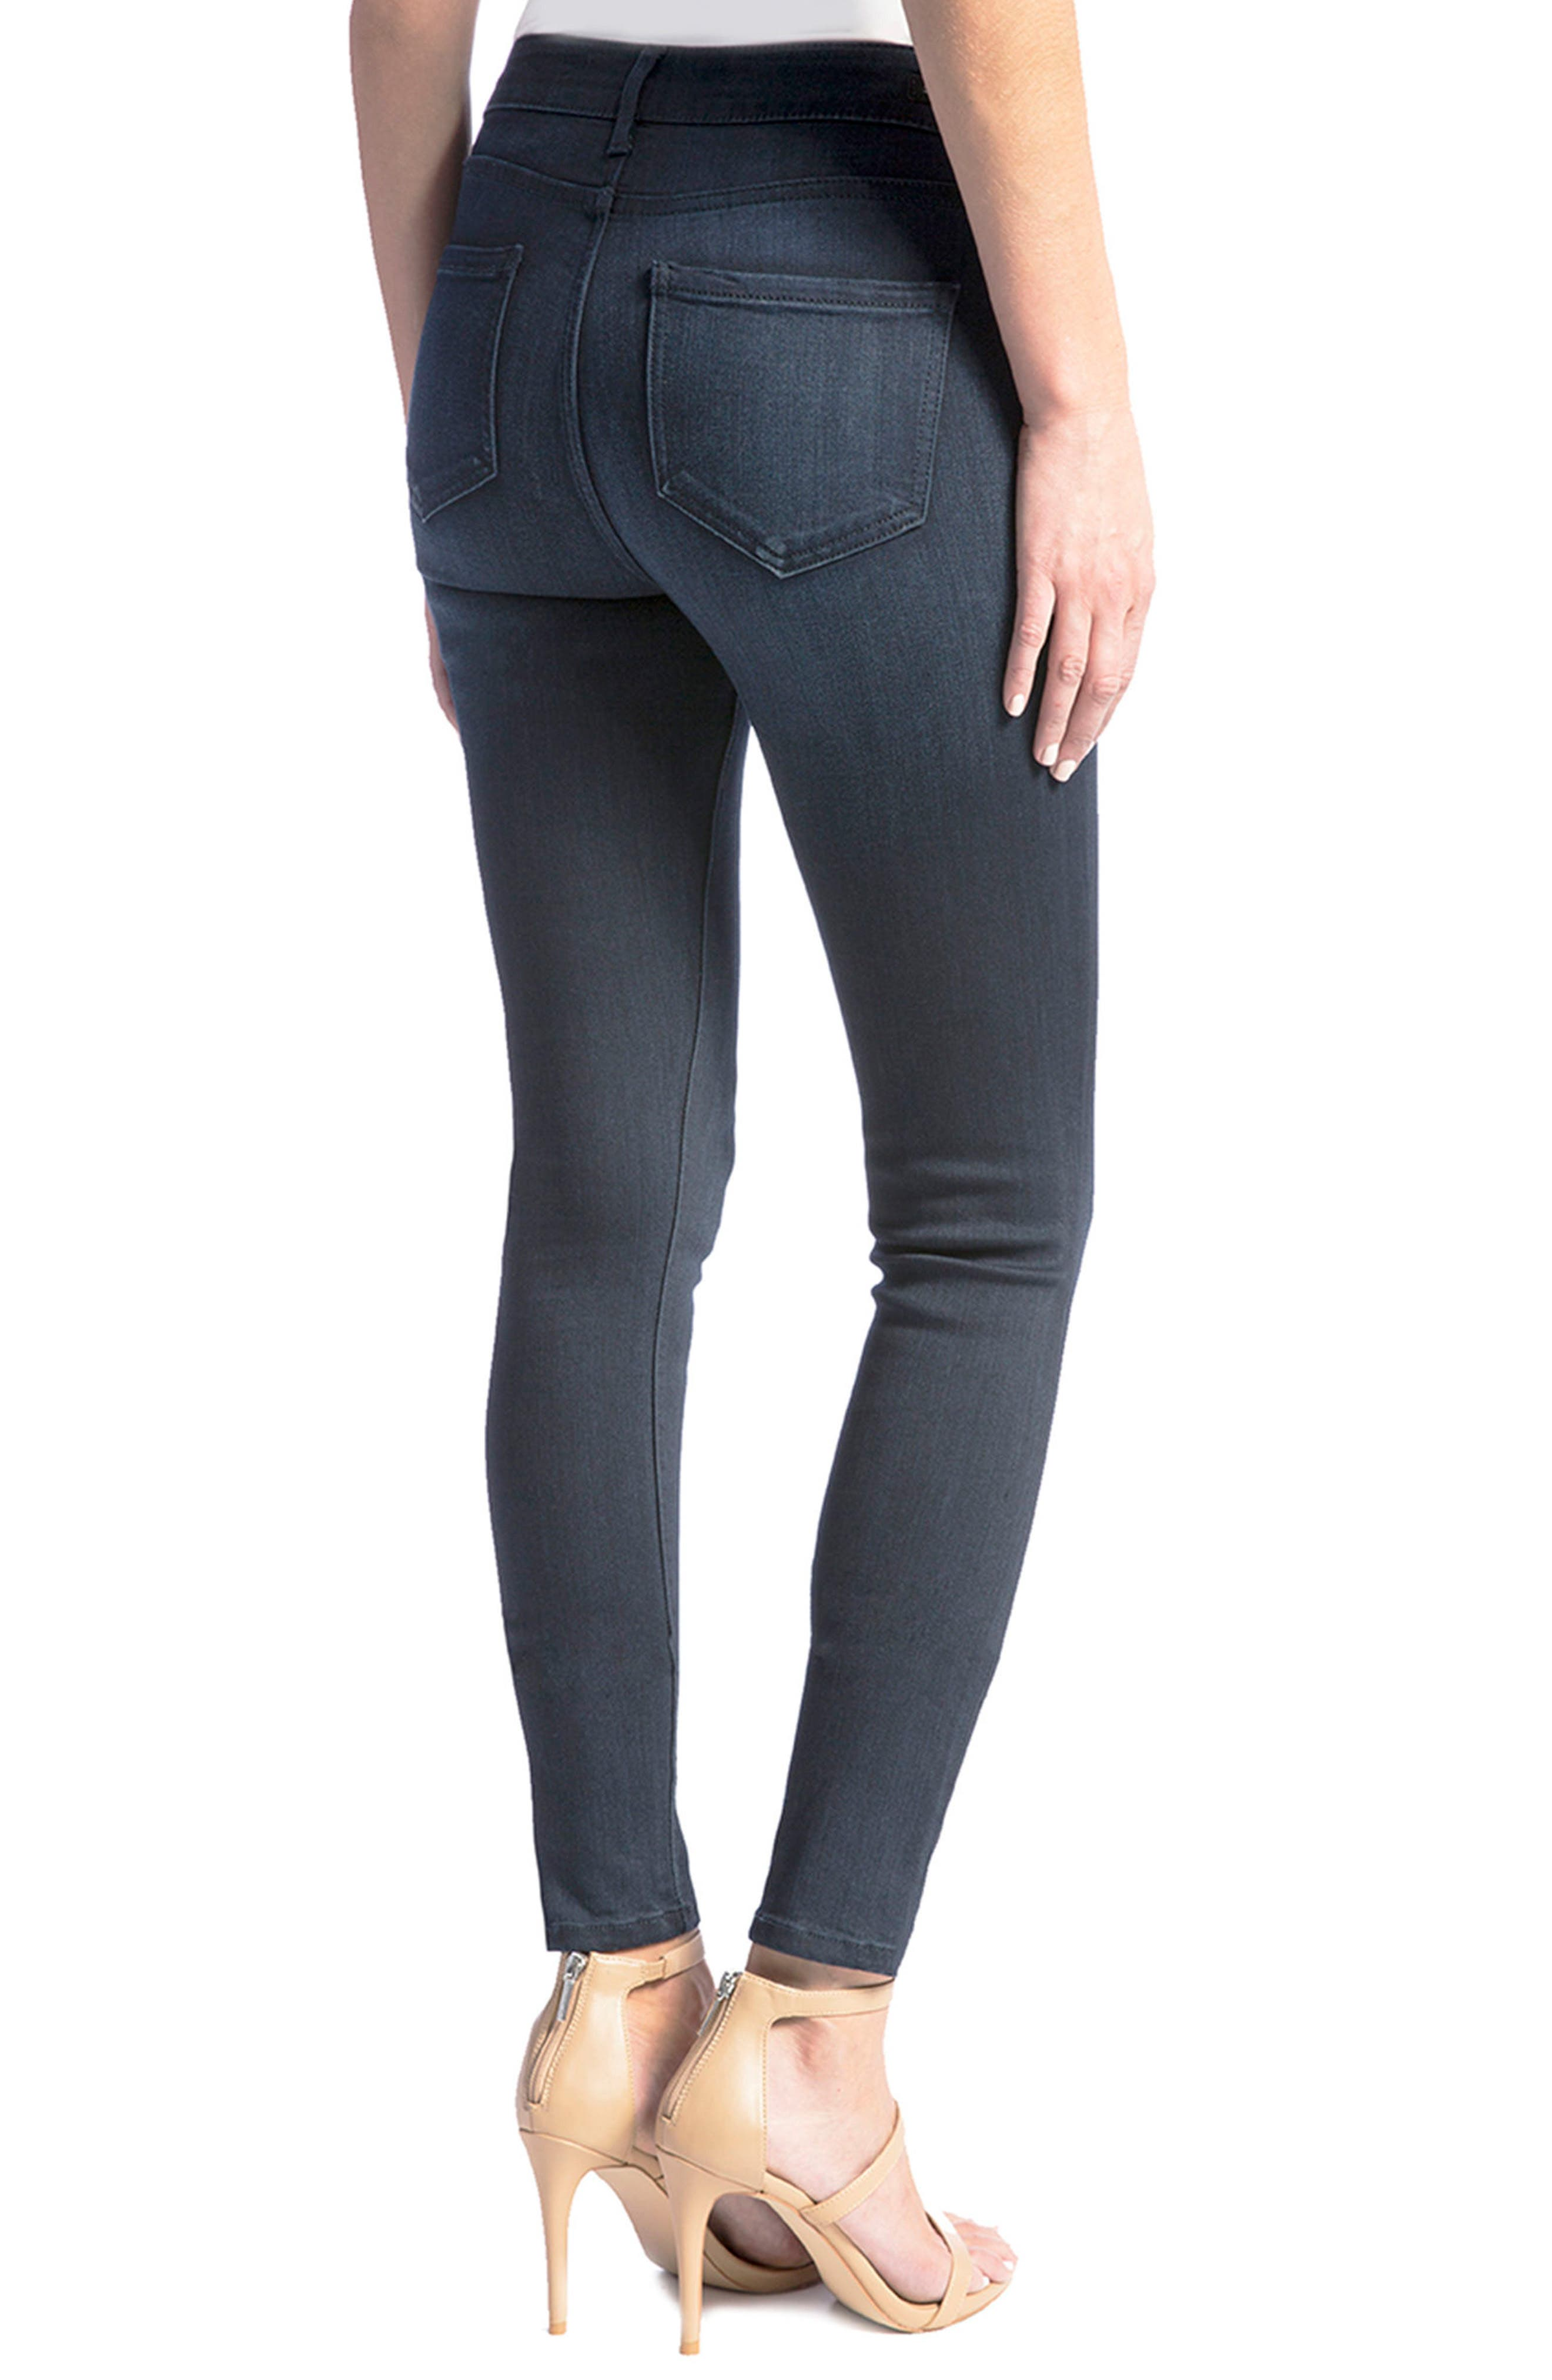 Jeans Co. Abby Stretch Skinny Jeans,                             Alternate thumbnail 4, color,                             402